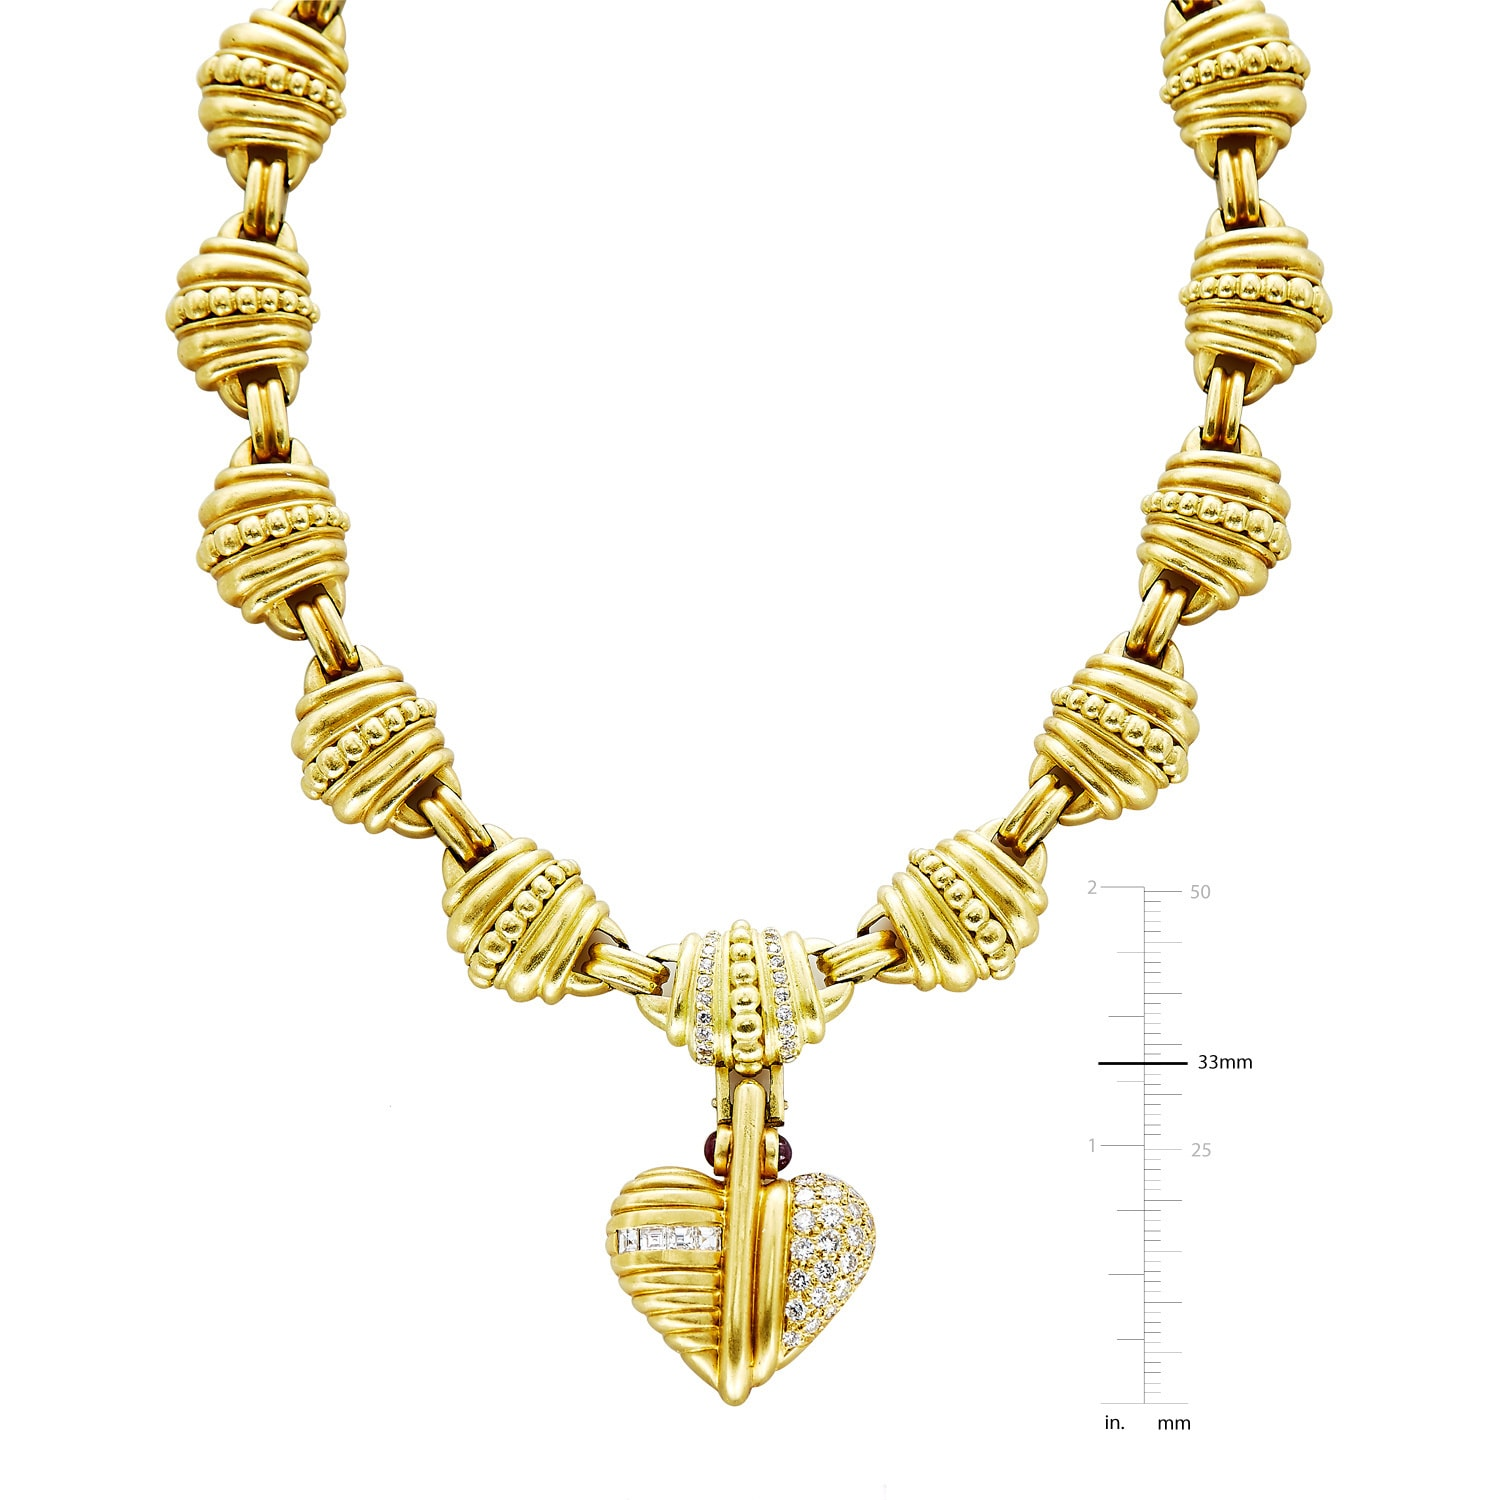 necklace product sharpen crystal op layer wid shop usm qlt comp with pink judith ripka rapture tif pdpimgshortdescription fpx resmode pendant heart